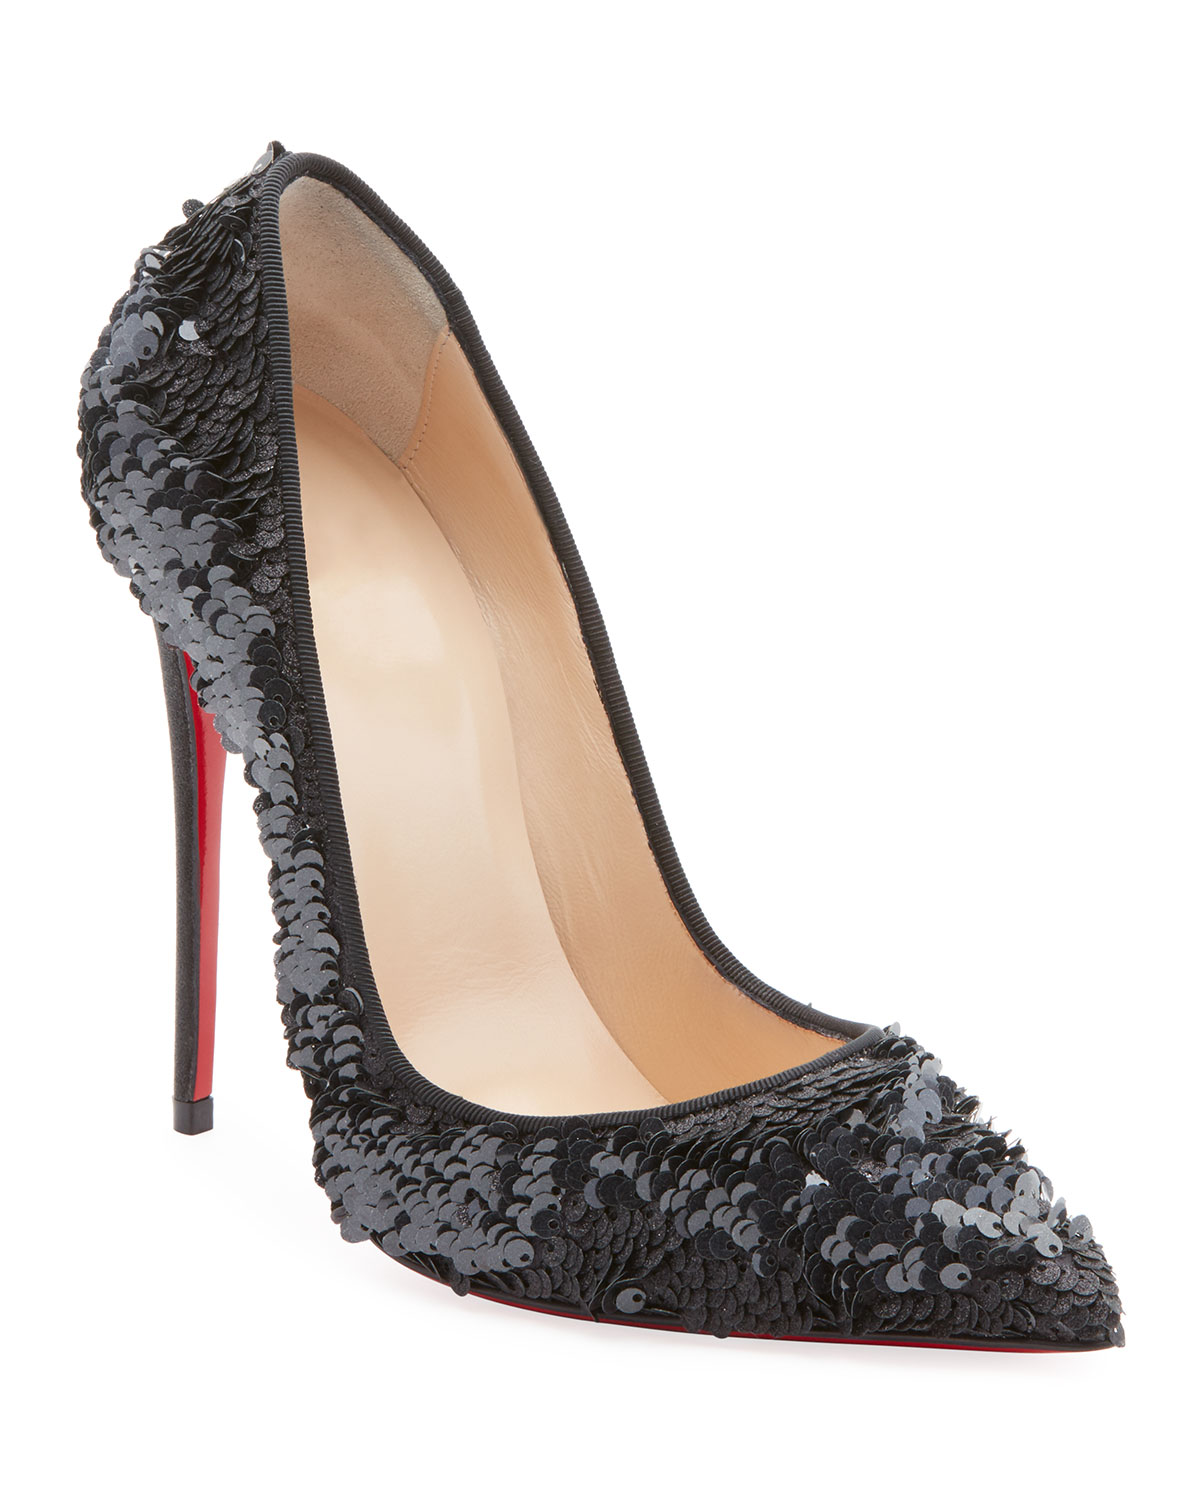 CHRISTIAN LOUBOUTIN SO KATE 120MM SEQUIN RED SOLE PUMP